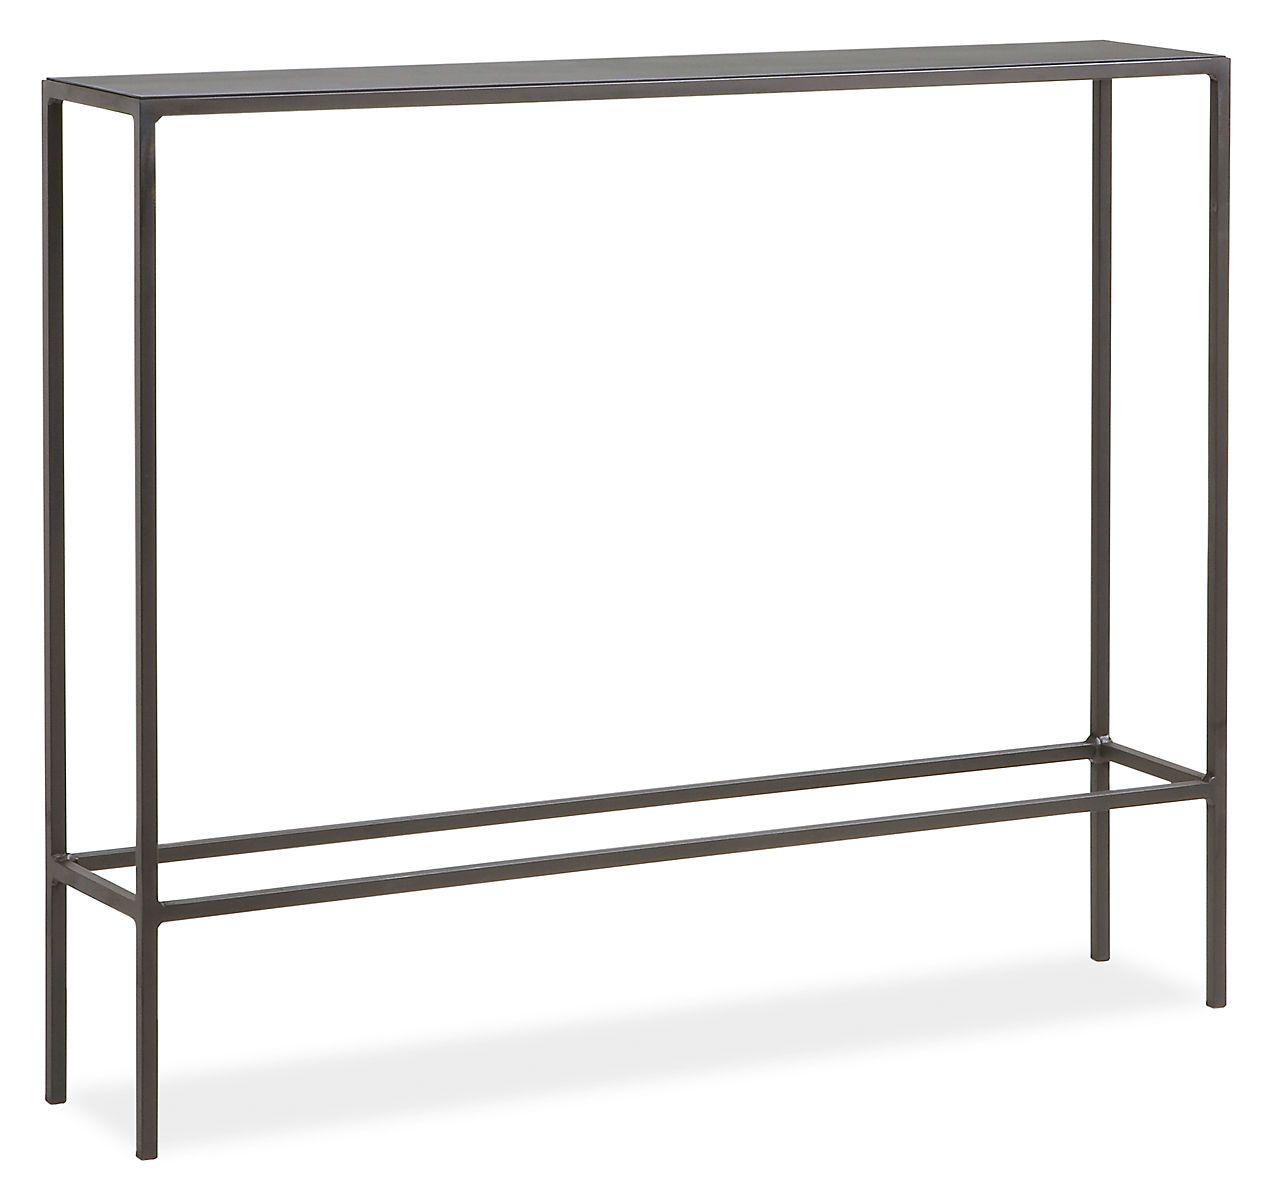 Slim console tables in natural steel weights slim console table a room board classic the slim console table collection offers a balance of grace geotapseo Image collections